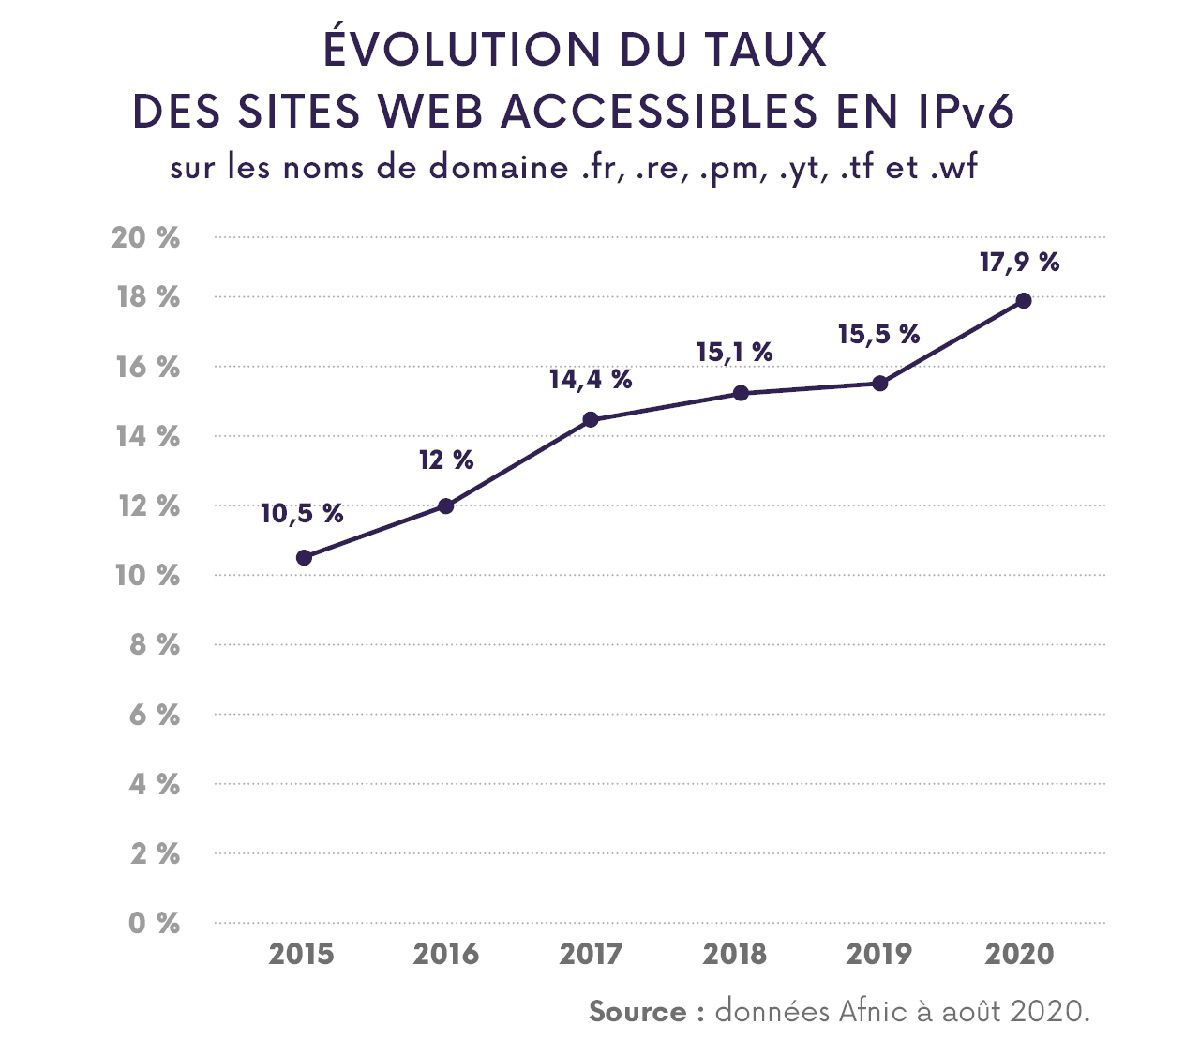 Courbe d'évolution des sites web en France accessibles en IPv6 de 2015 à 2020.